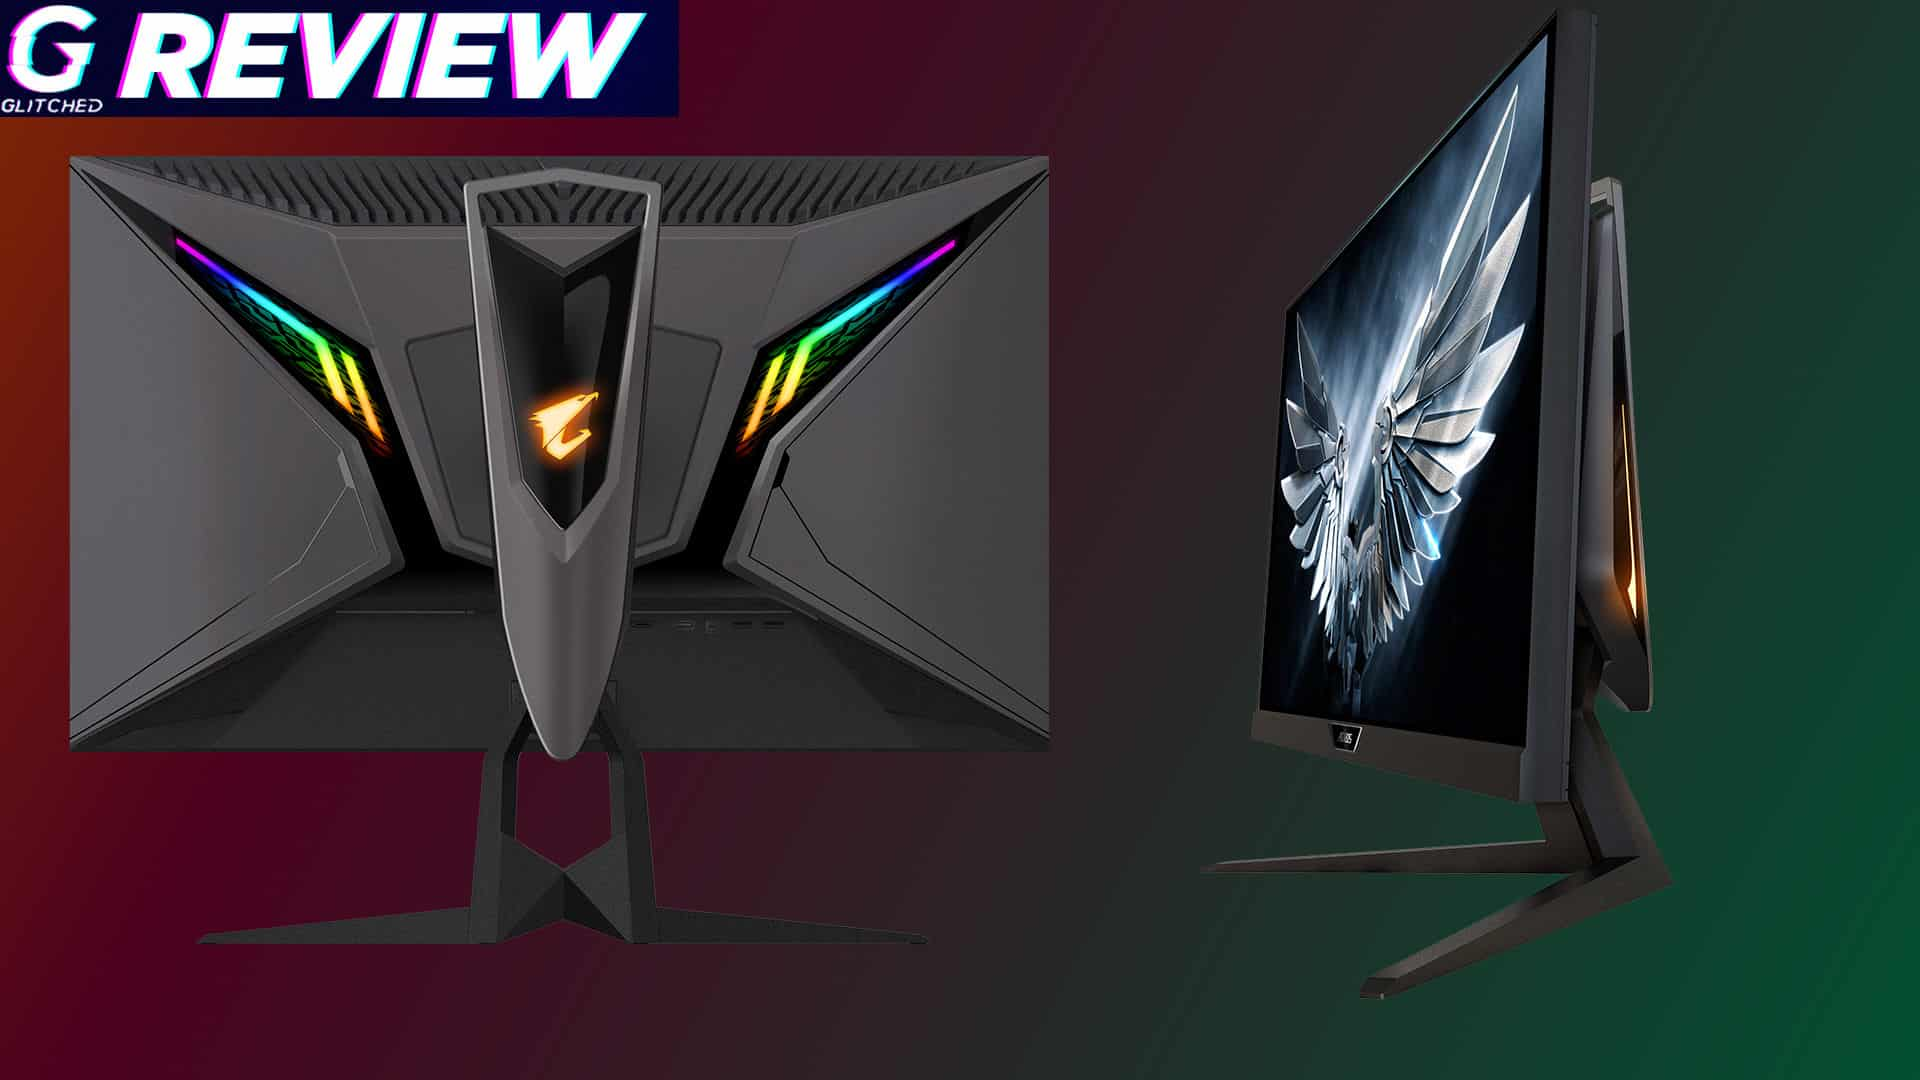 Gigabyte AORUS FI27Q-P Monitor Review – The Best Money Can Buy